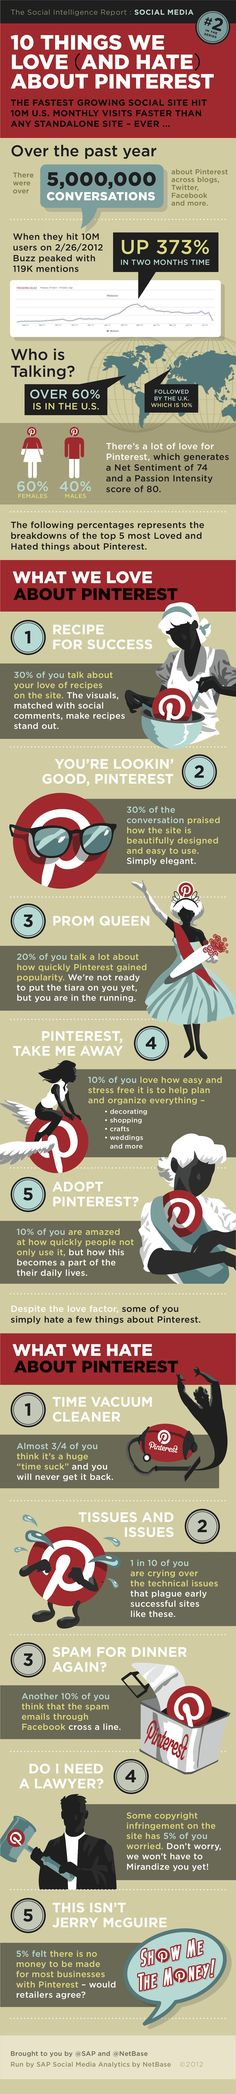 10 Things People Love and Hate About Pinterest